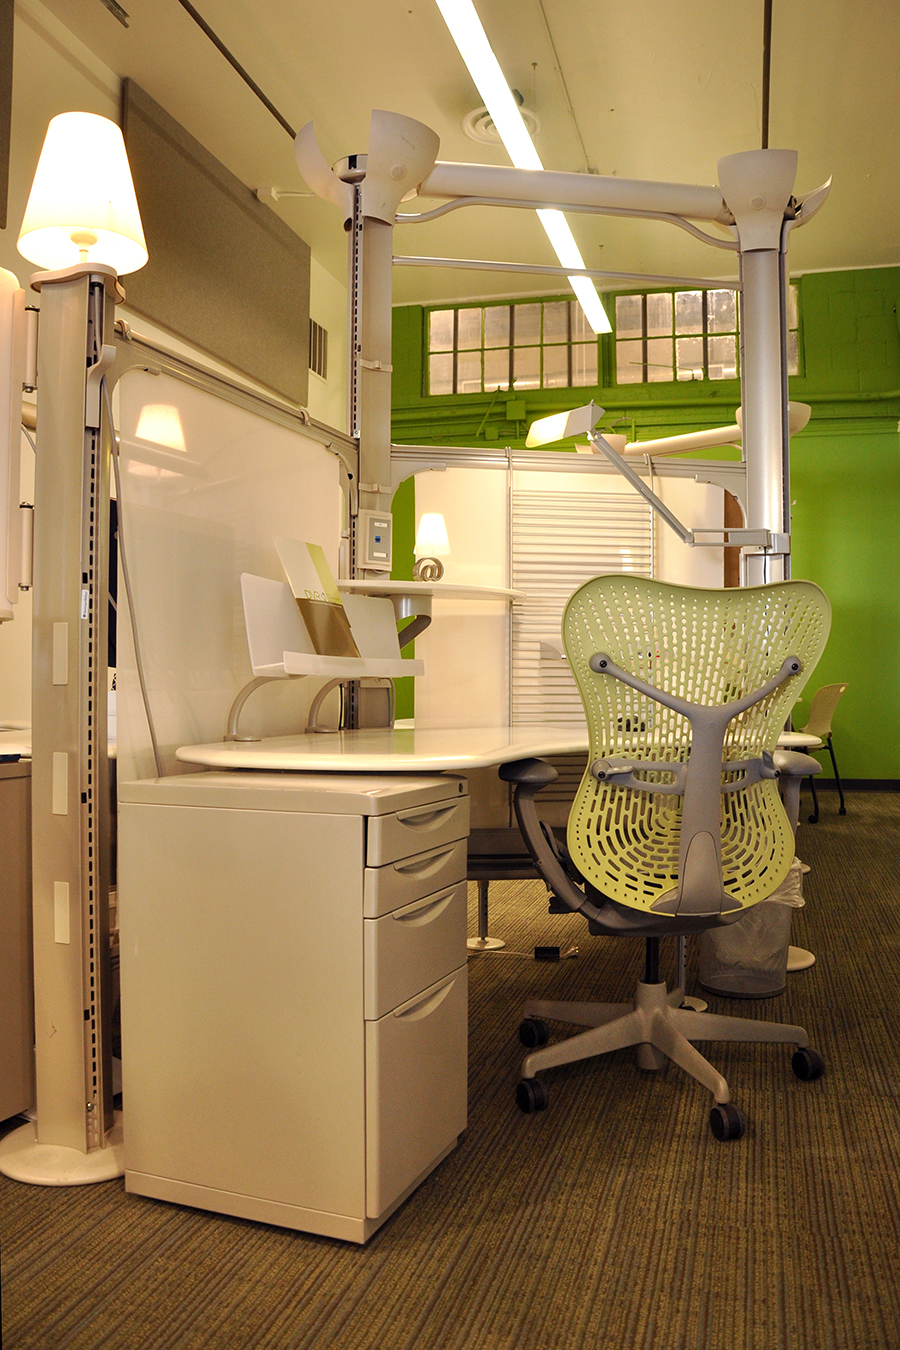 furniture projects workplace resource colorado more · nimbl denver co